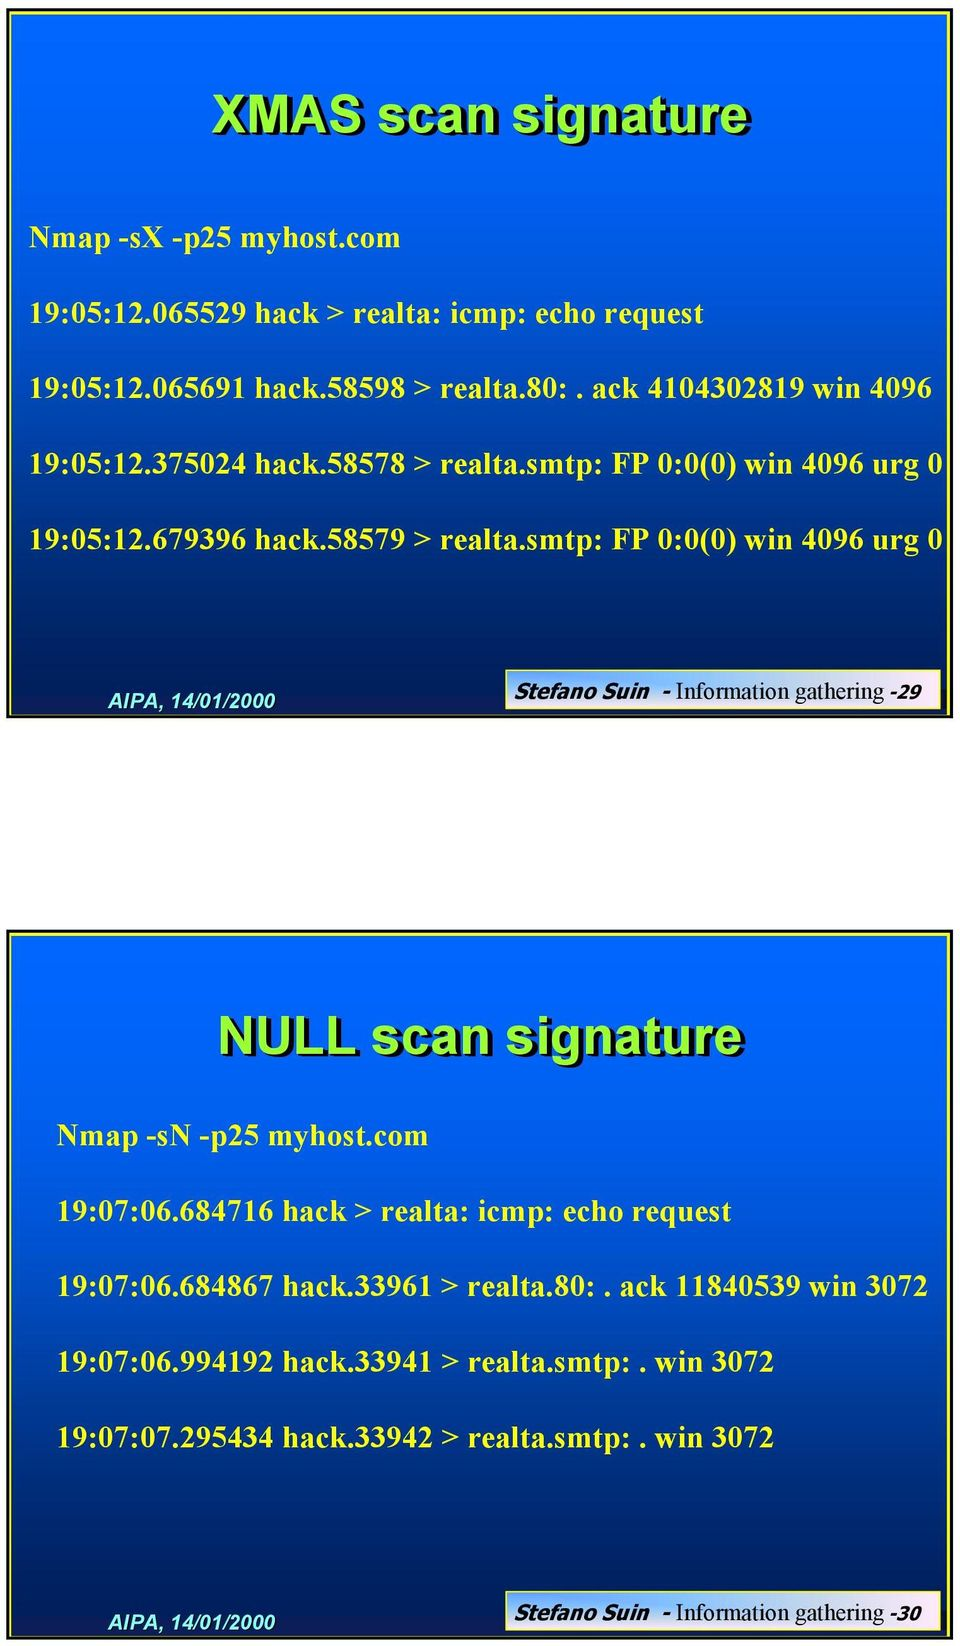 smtp: FP 0:0(0) win 4096 urg 0 Stefano Suin - Information gathering -29 NULL scan signature Nmap -sn -p25 myhost.com 19:07:06.